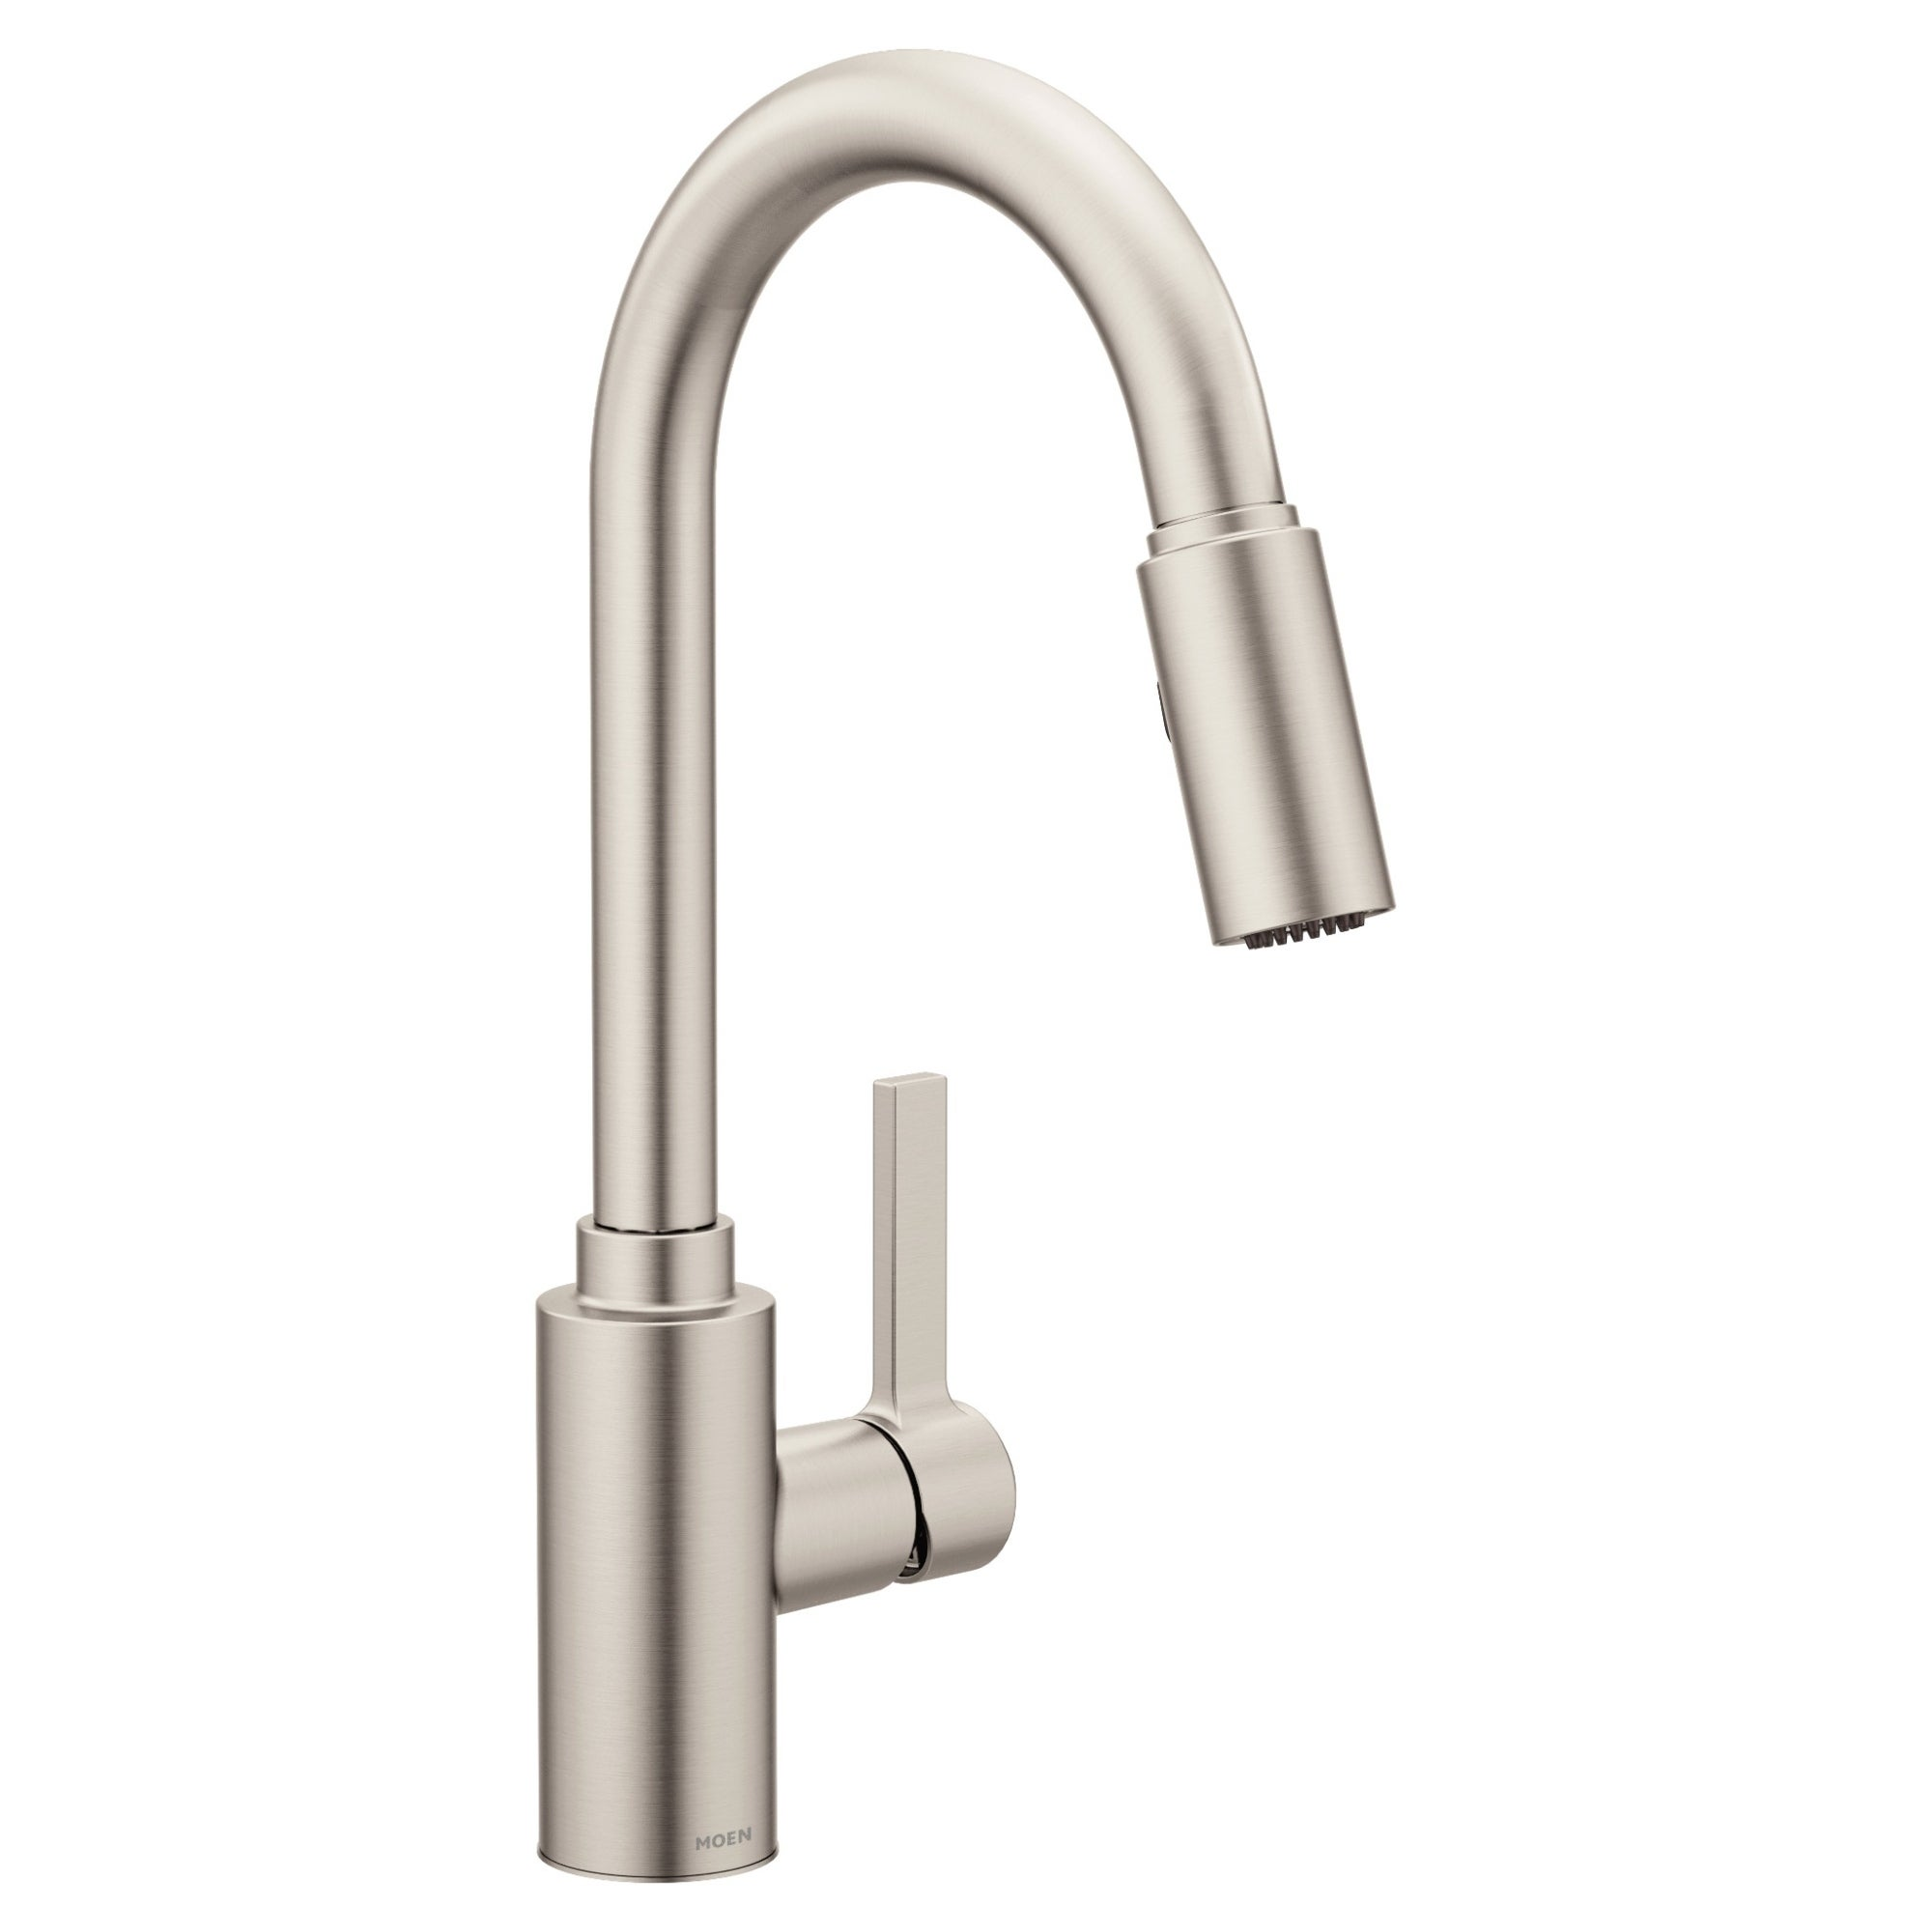 Moen Genta One-Handle High Arc Pulldown Kitchen Faucet Spot Resist Stainless